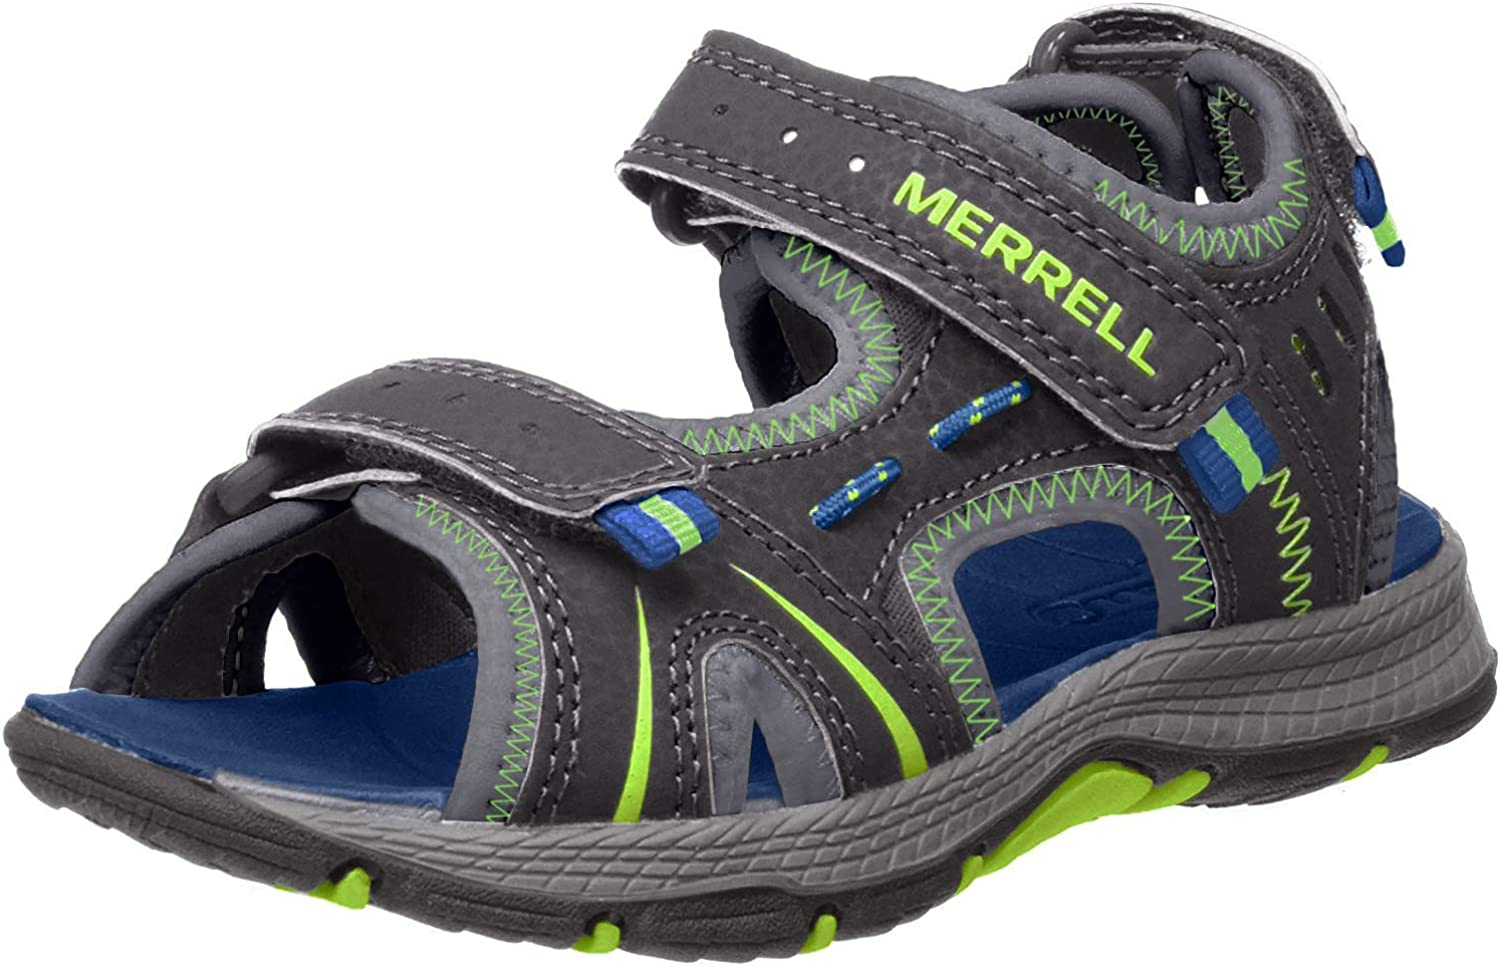 Merrell Panther Athletic 5 popular Recommendation Sandal Water